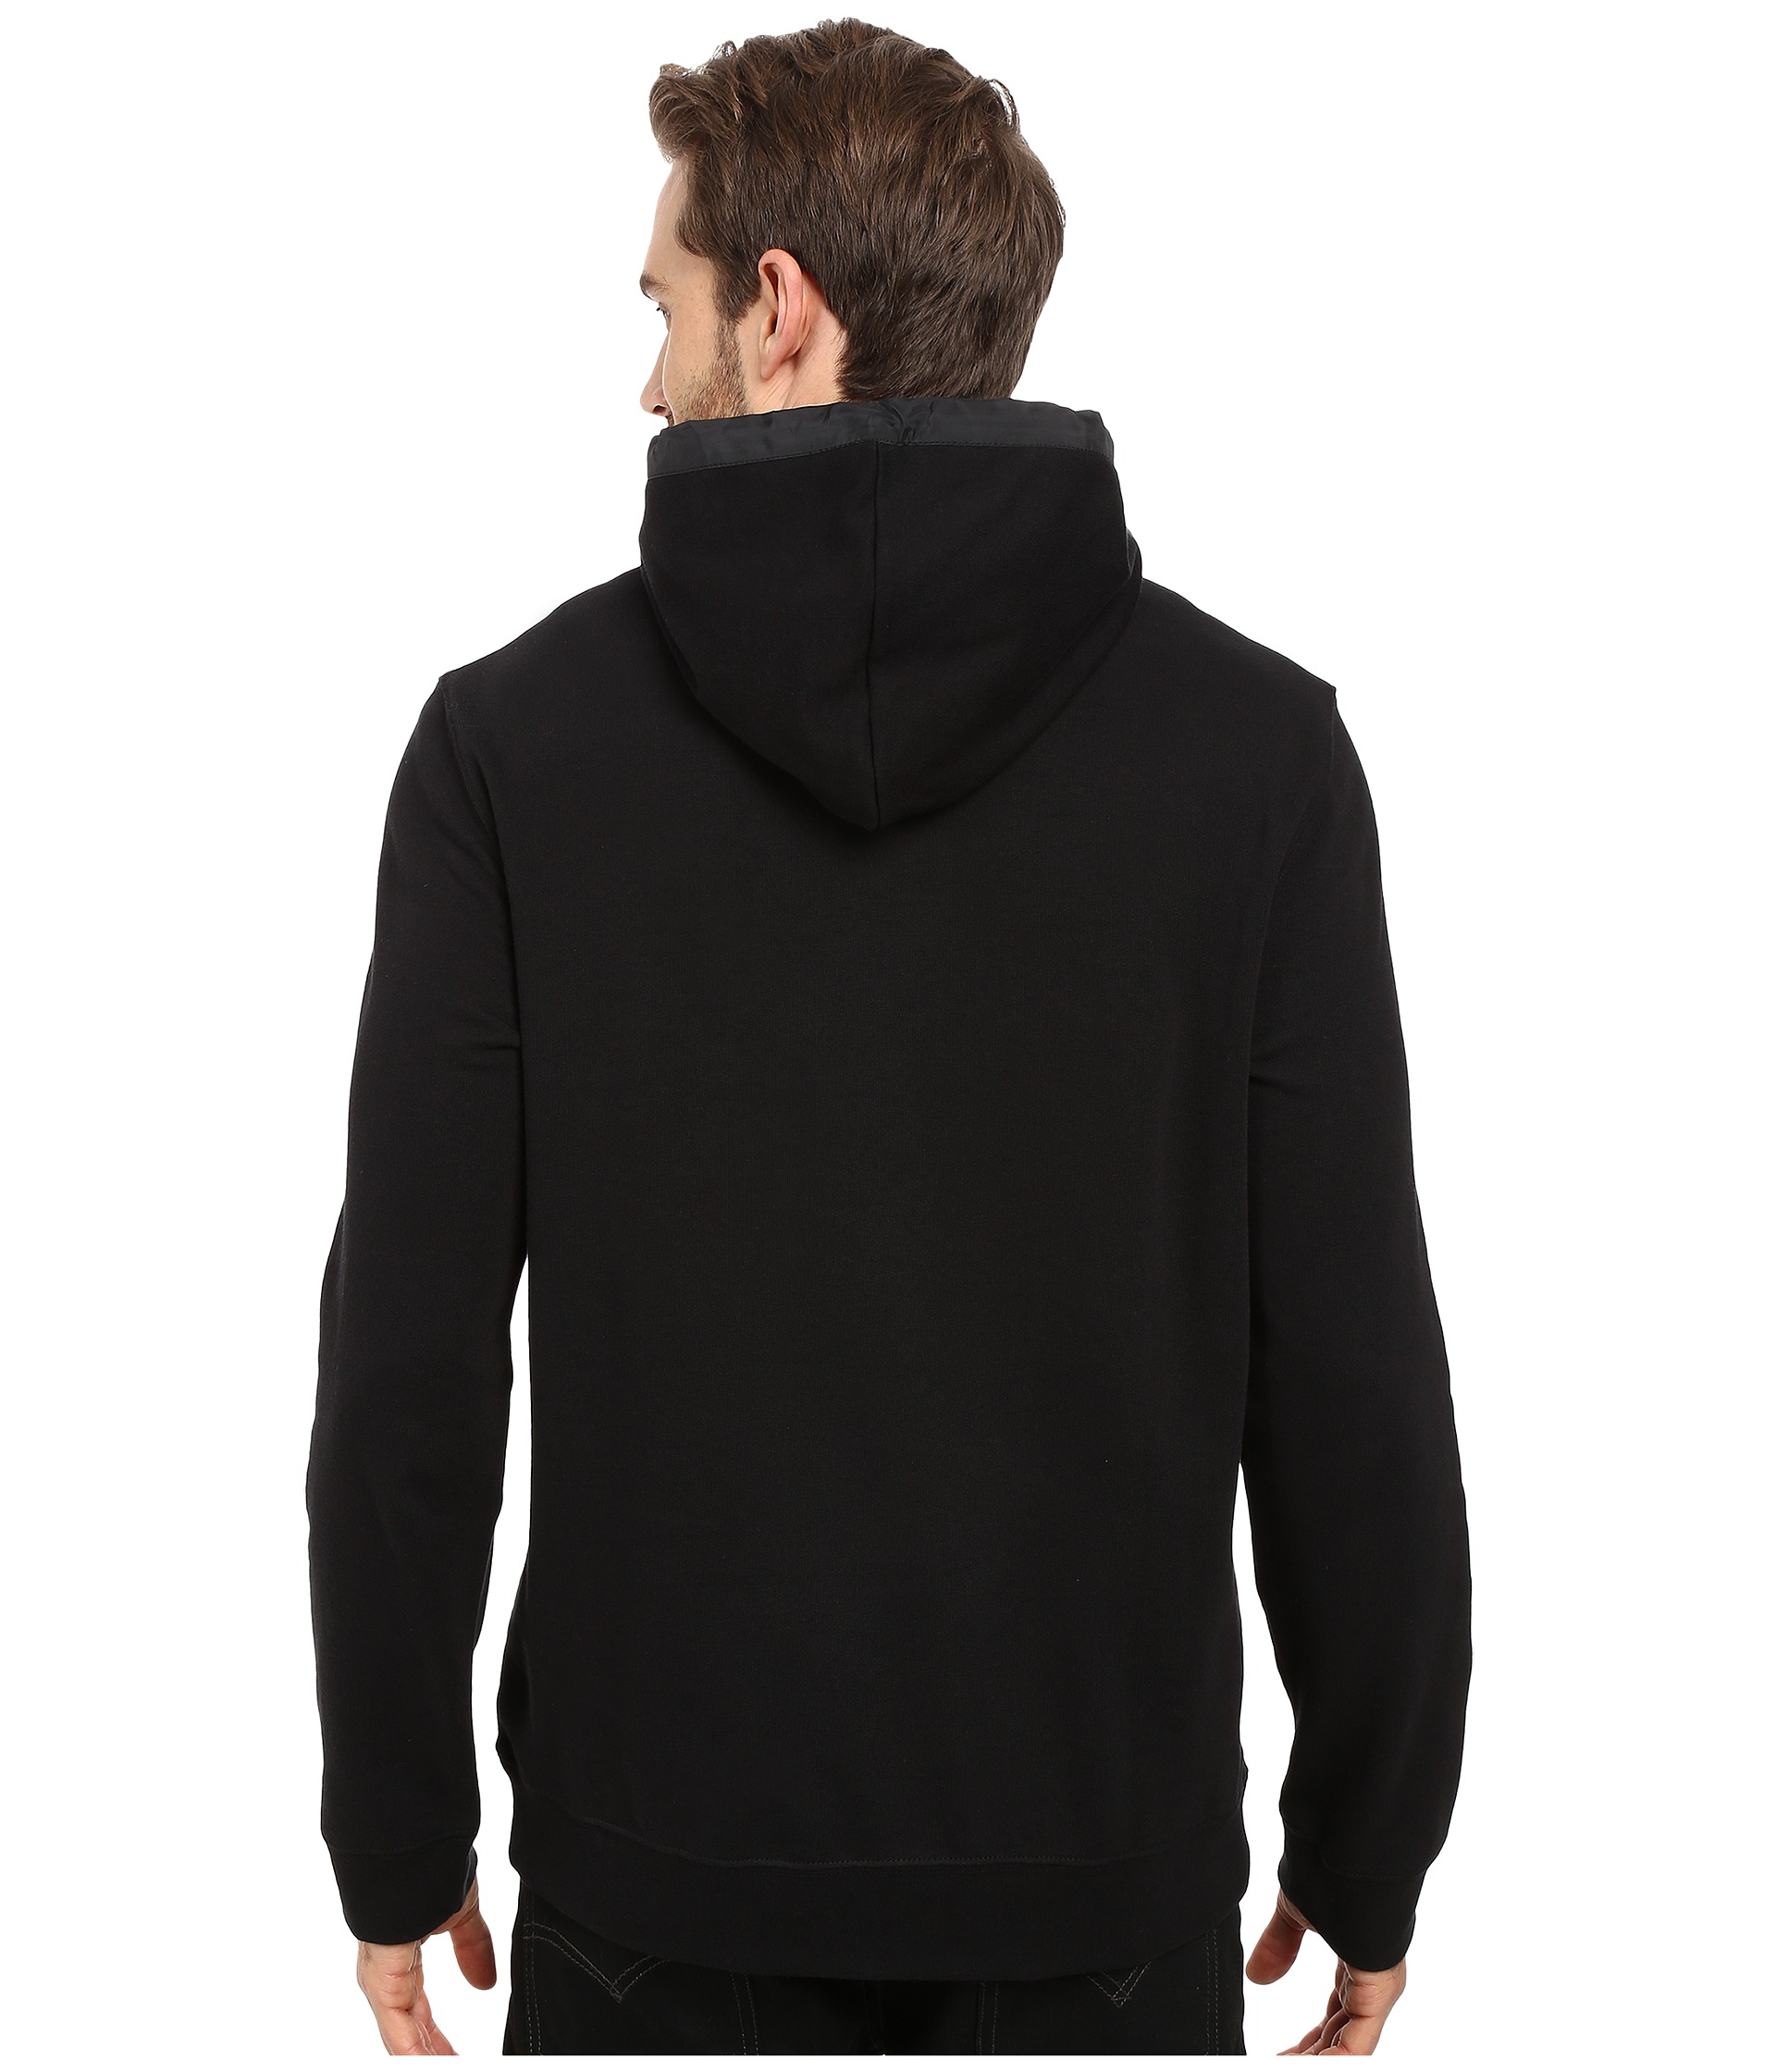 calvin klein long sleeve ck logo hoodie free shipping both ways. Black Bedroom Furniture Sets. Home Design Ideas